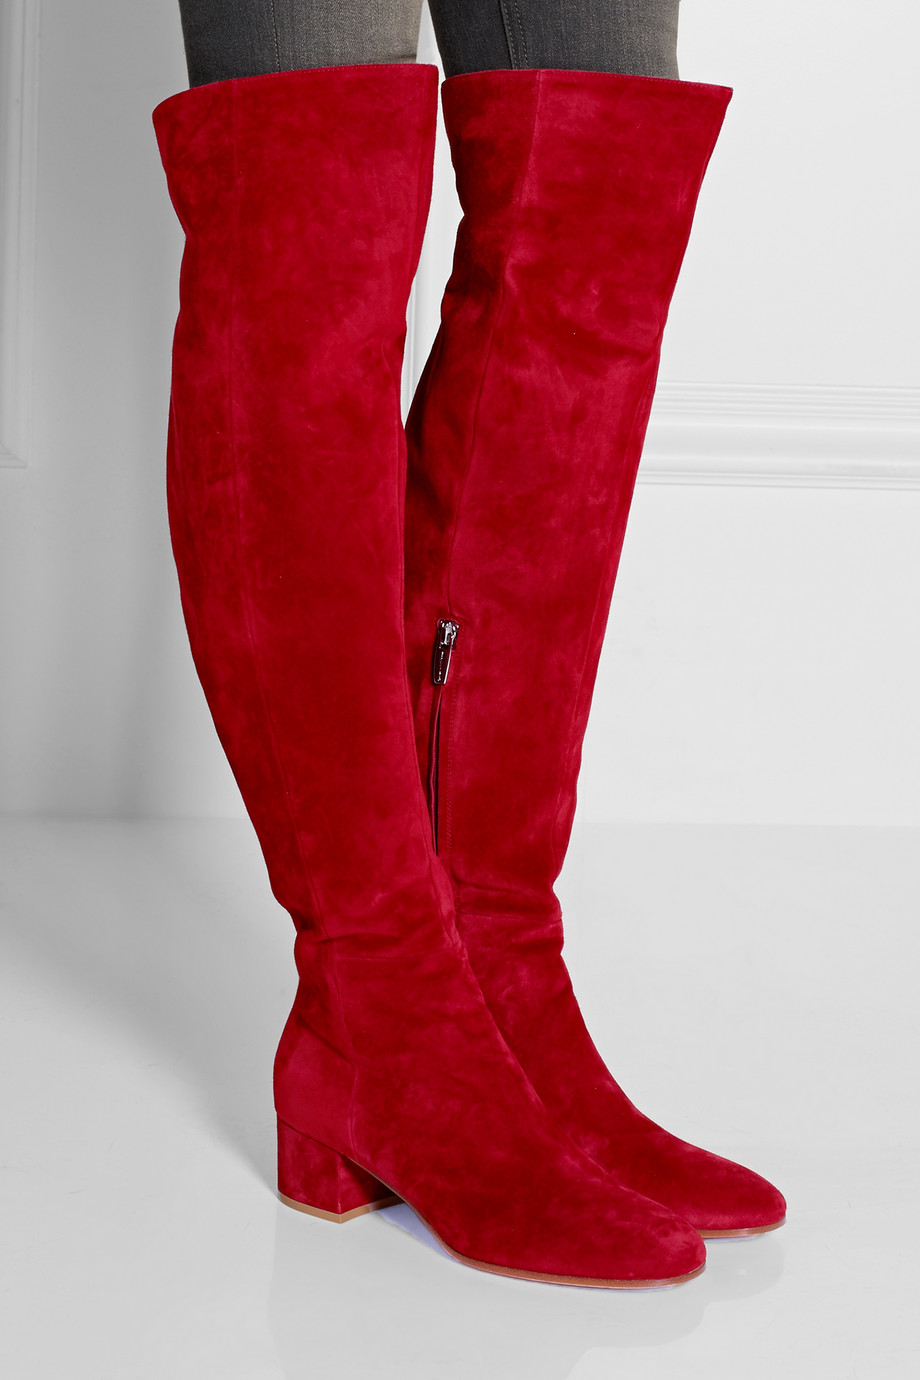 Real Pic Winter Red Suede Round Toe Over The Knee Boots  Thick Heels Woman Fashion Tight High Boots Winter Long Boots